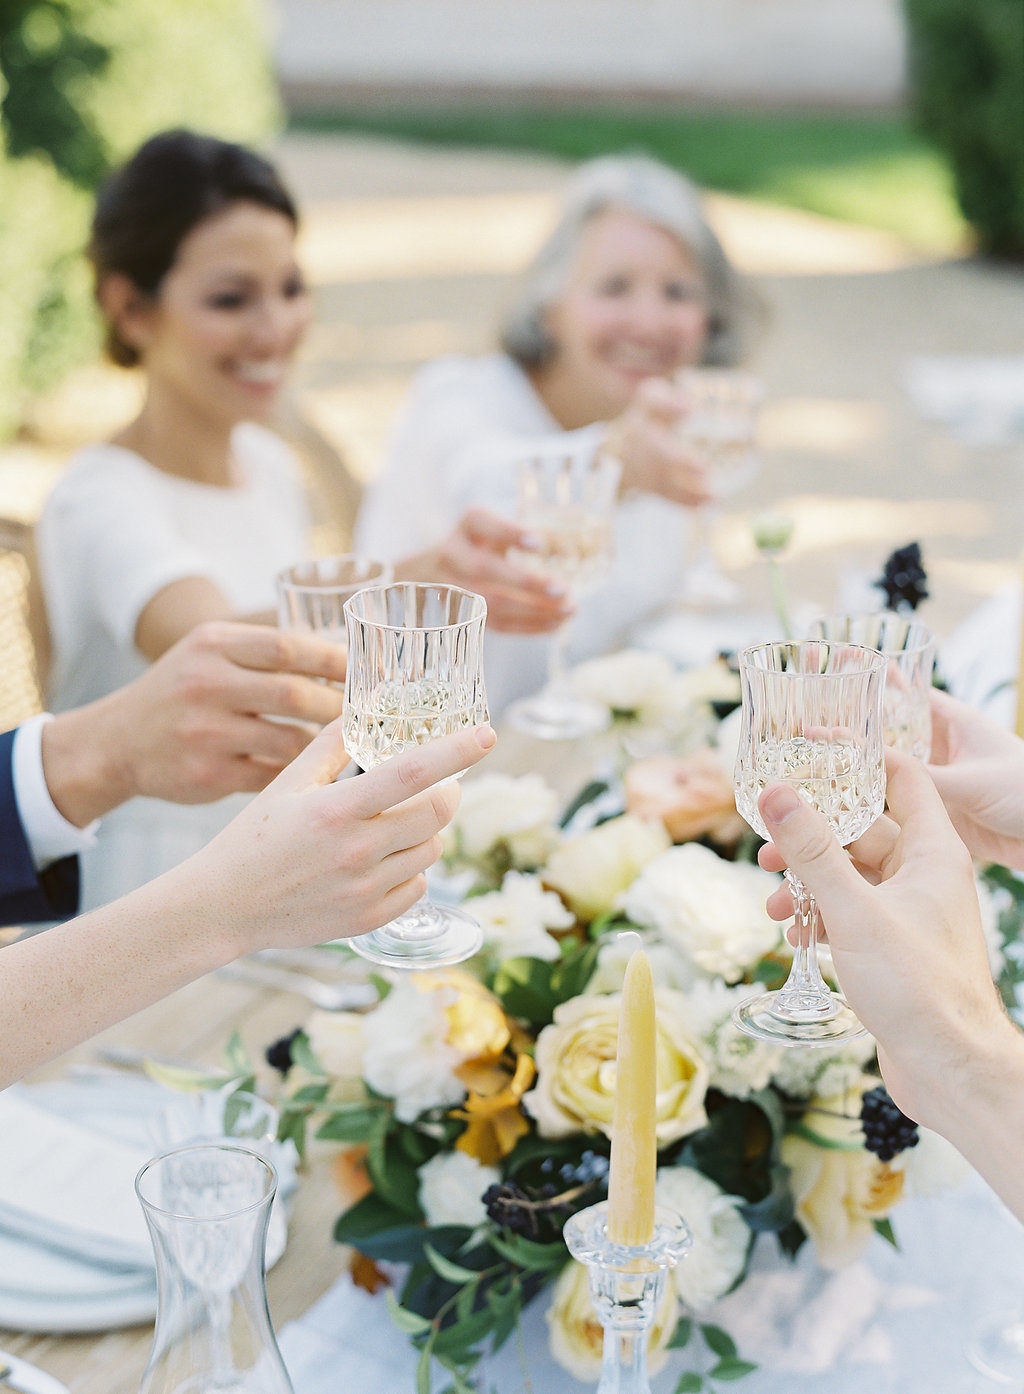 glasses toasting at wedding